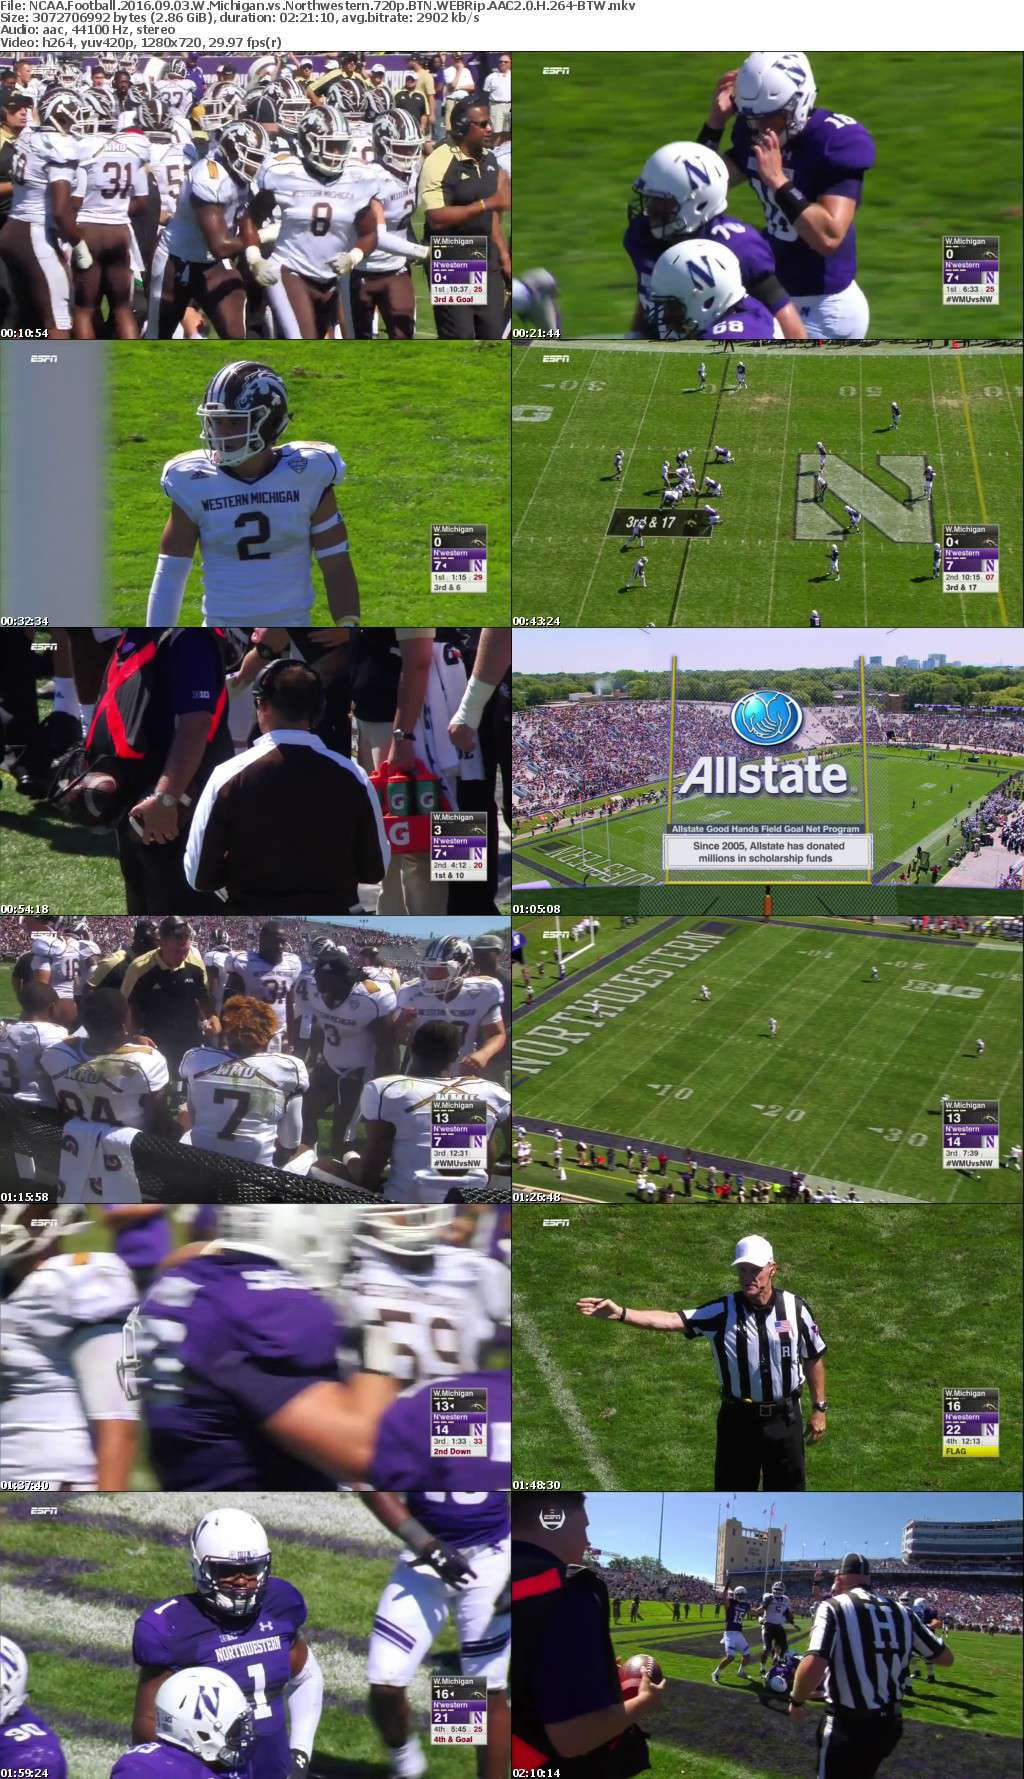 NCAA Football 2016 09 03 W Michigan vs Northwestern 720p BTN WEBRip AAC2 0 H 264-BTW